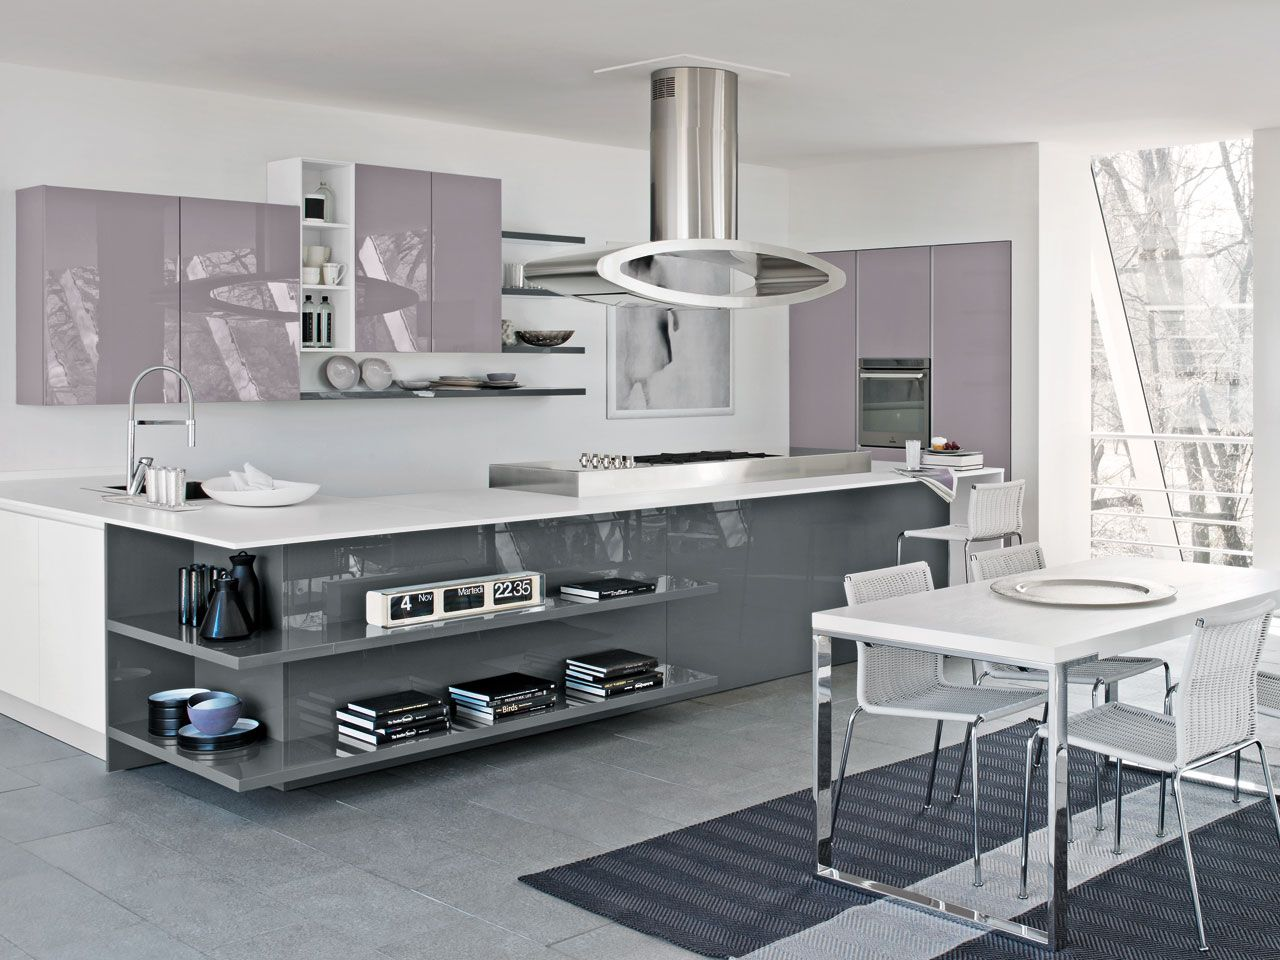 BRAVA - Cucina Lube Moderna | Kitchens, Kitchen design and Marbles